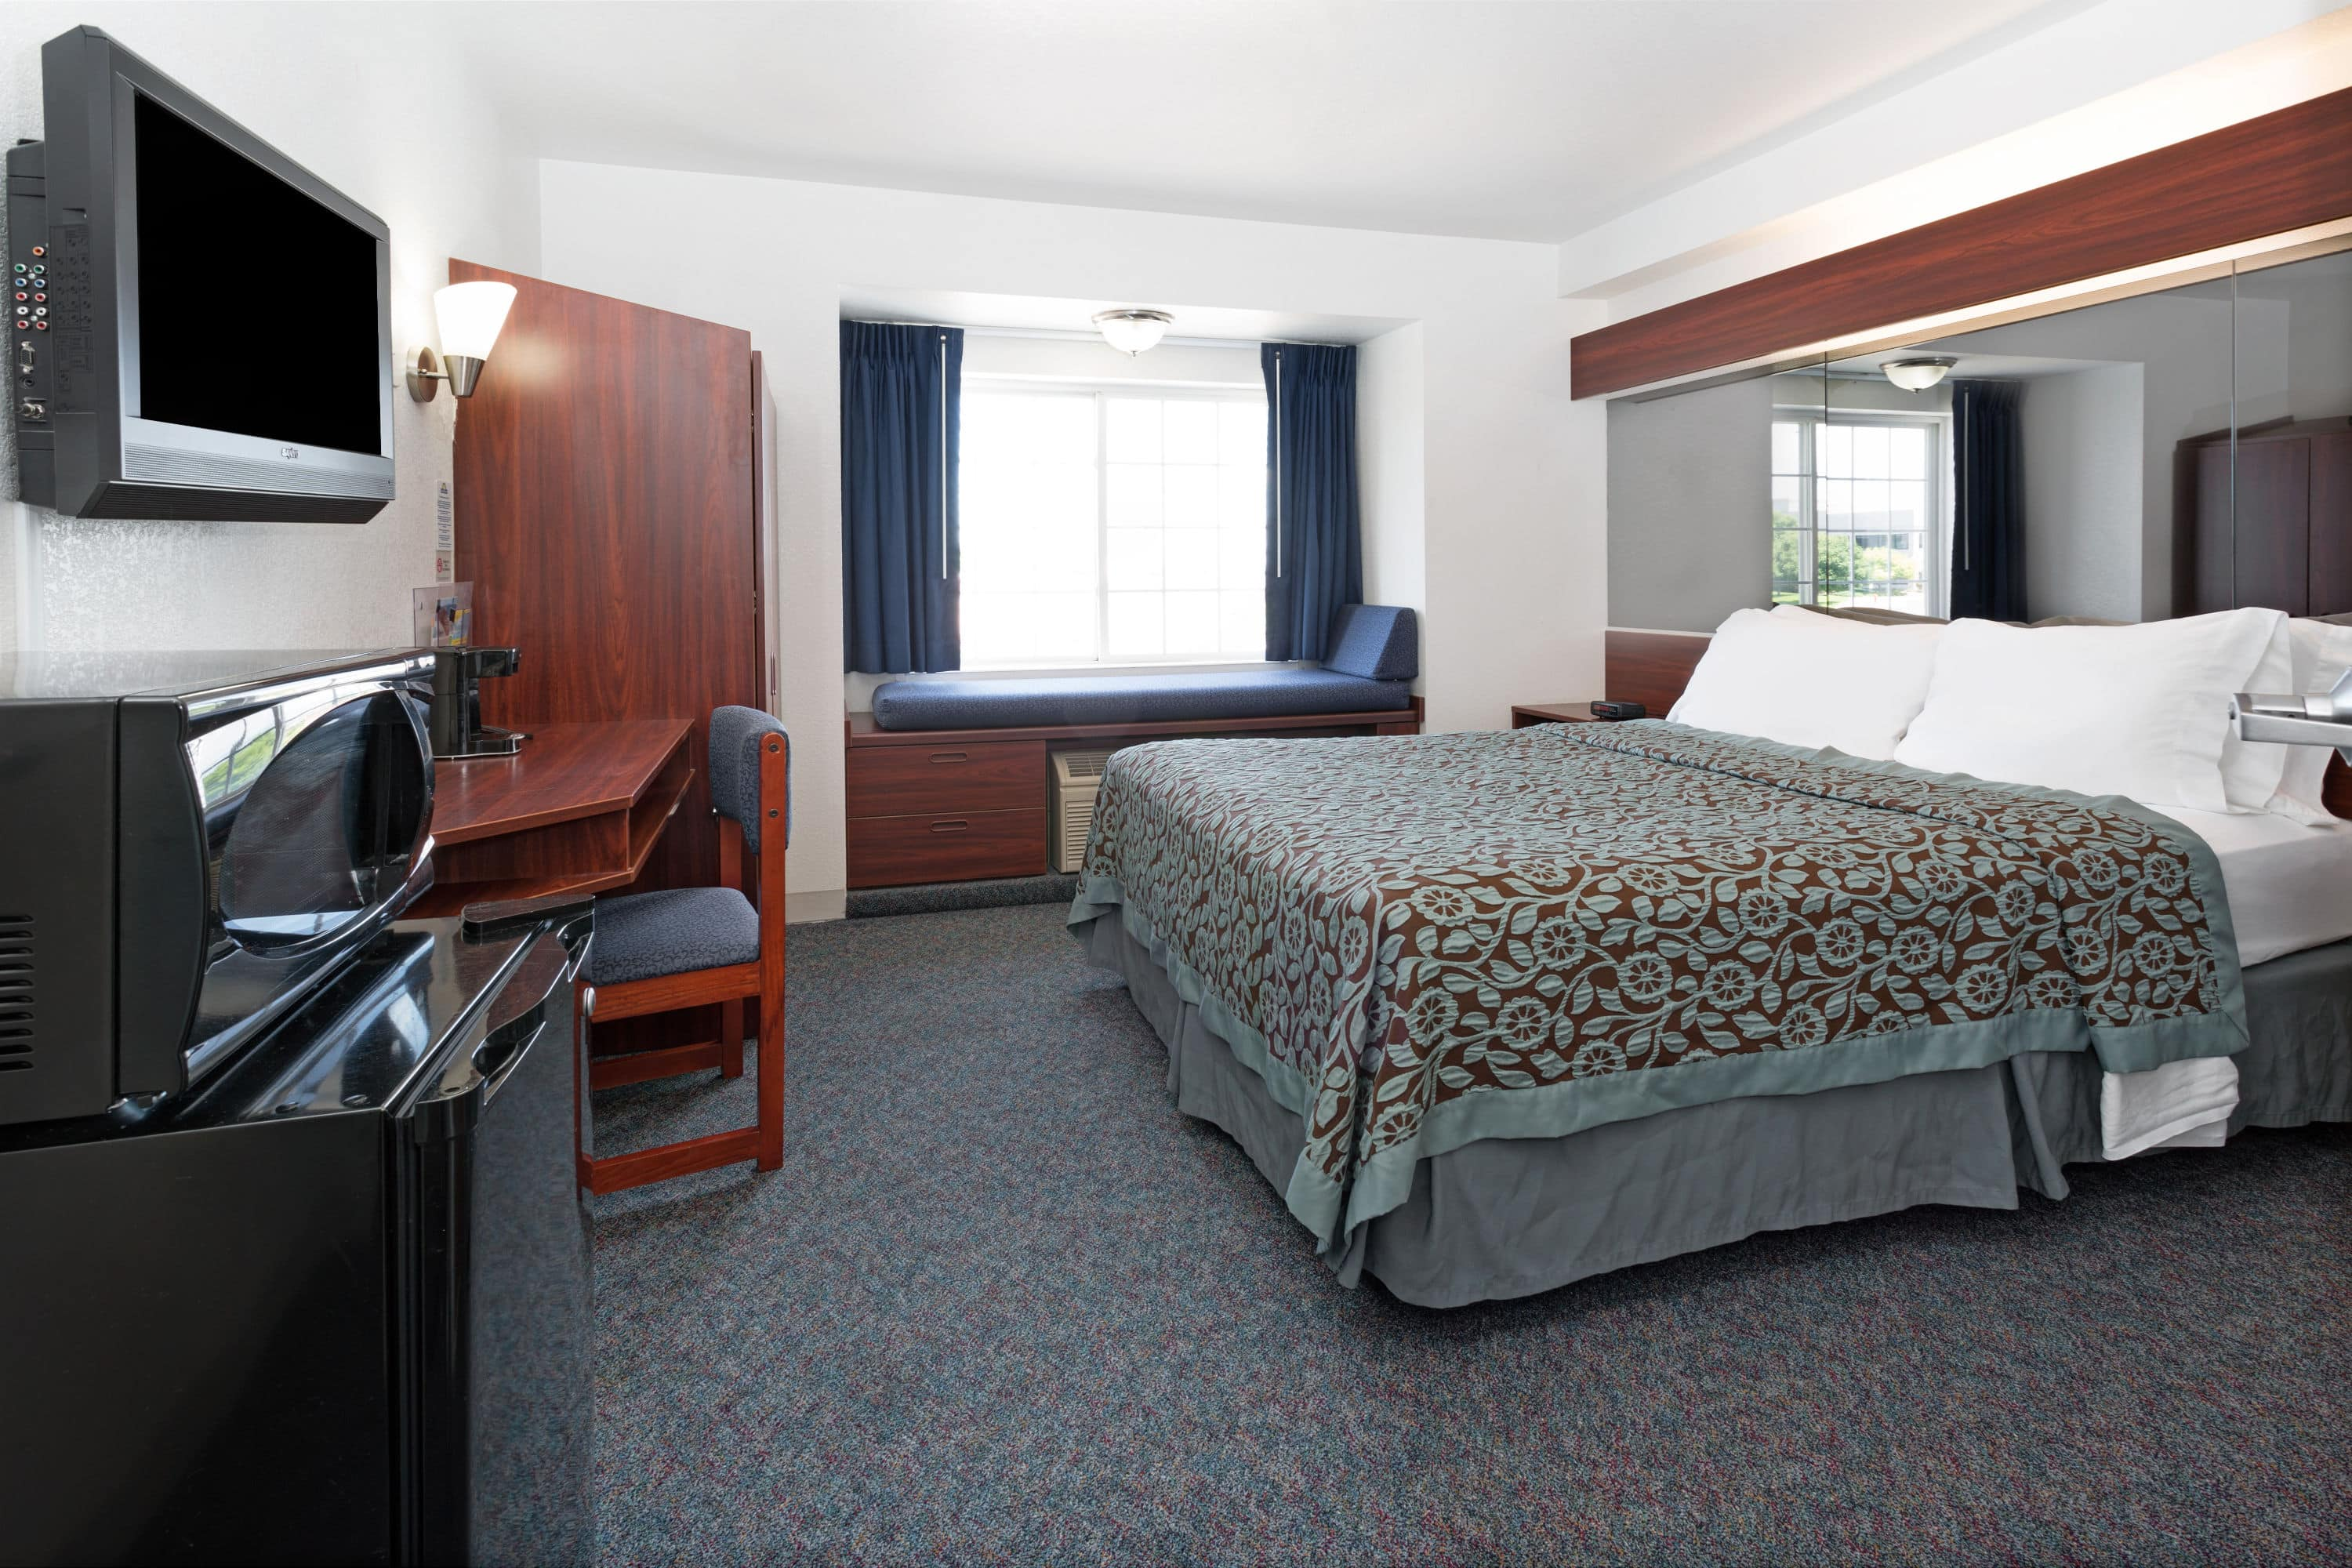 Guest room at the Days Inn Greeley in Greeley, Colorado